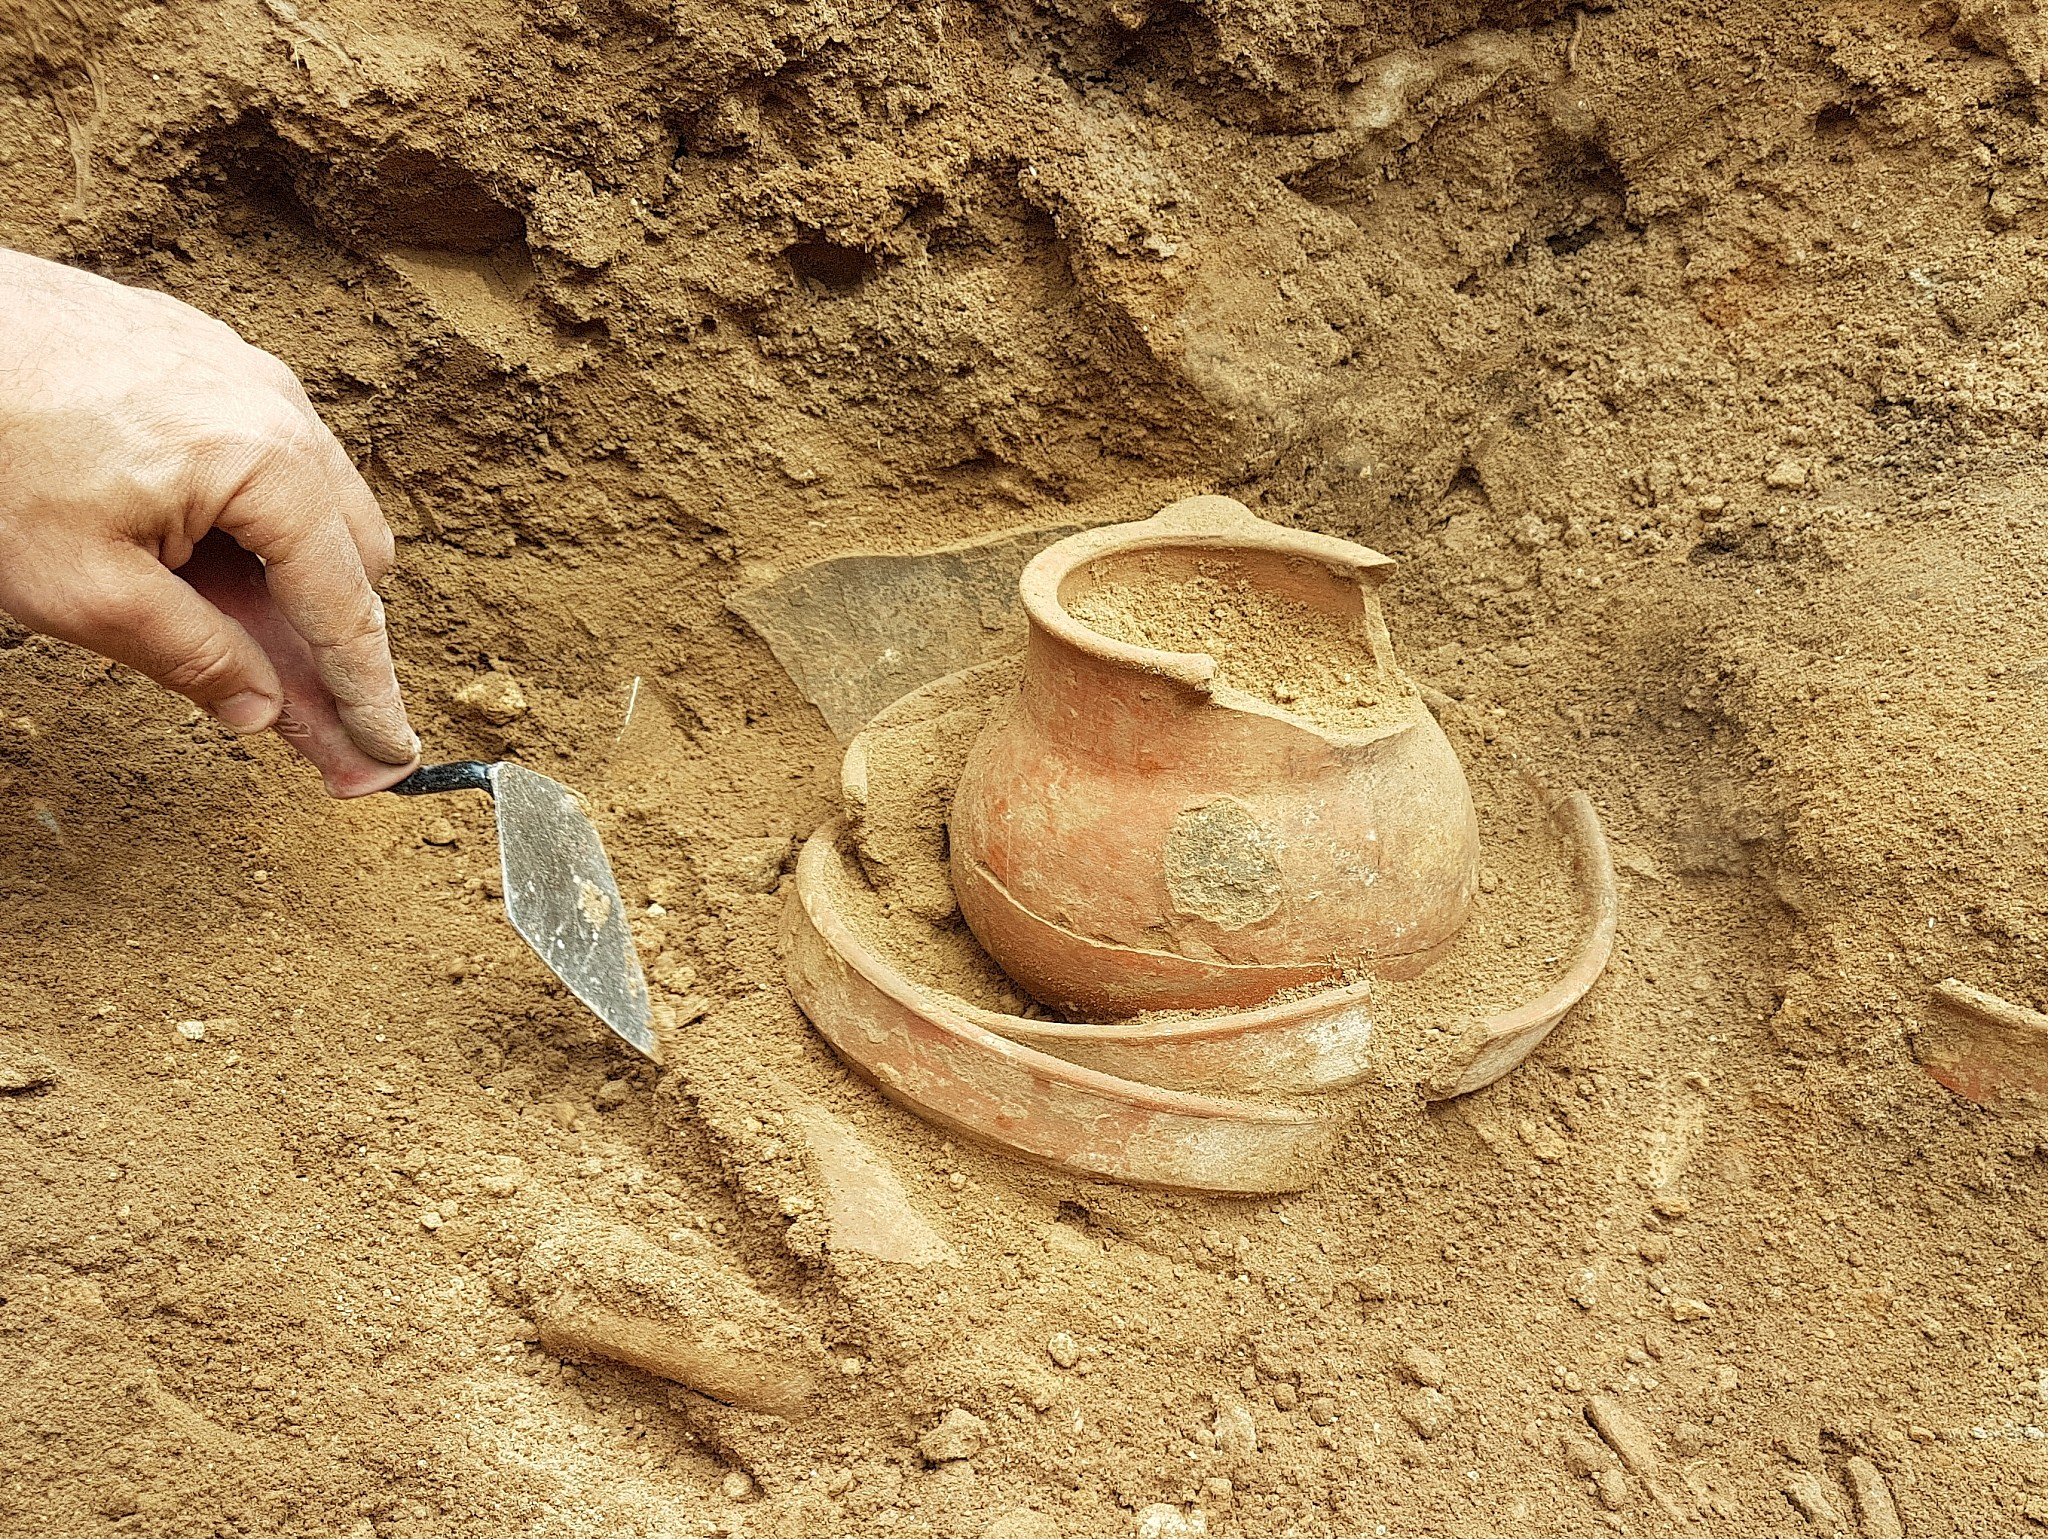 Pottery from Khirbet a-Ra'i, which archaeologists have identified as biblical Ziklag. (Excavation expedition to Khirbet a-Ra'i)